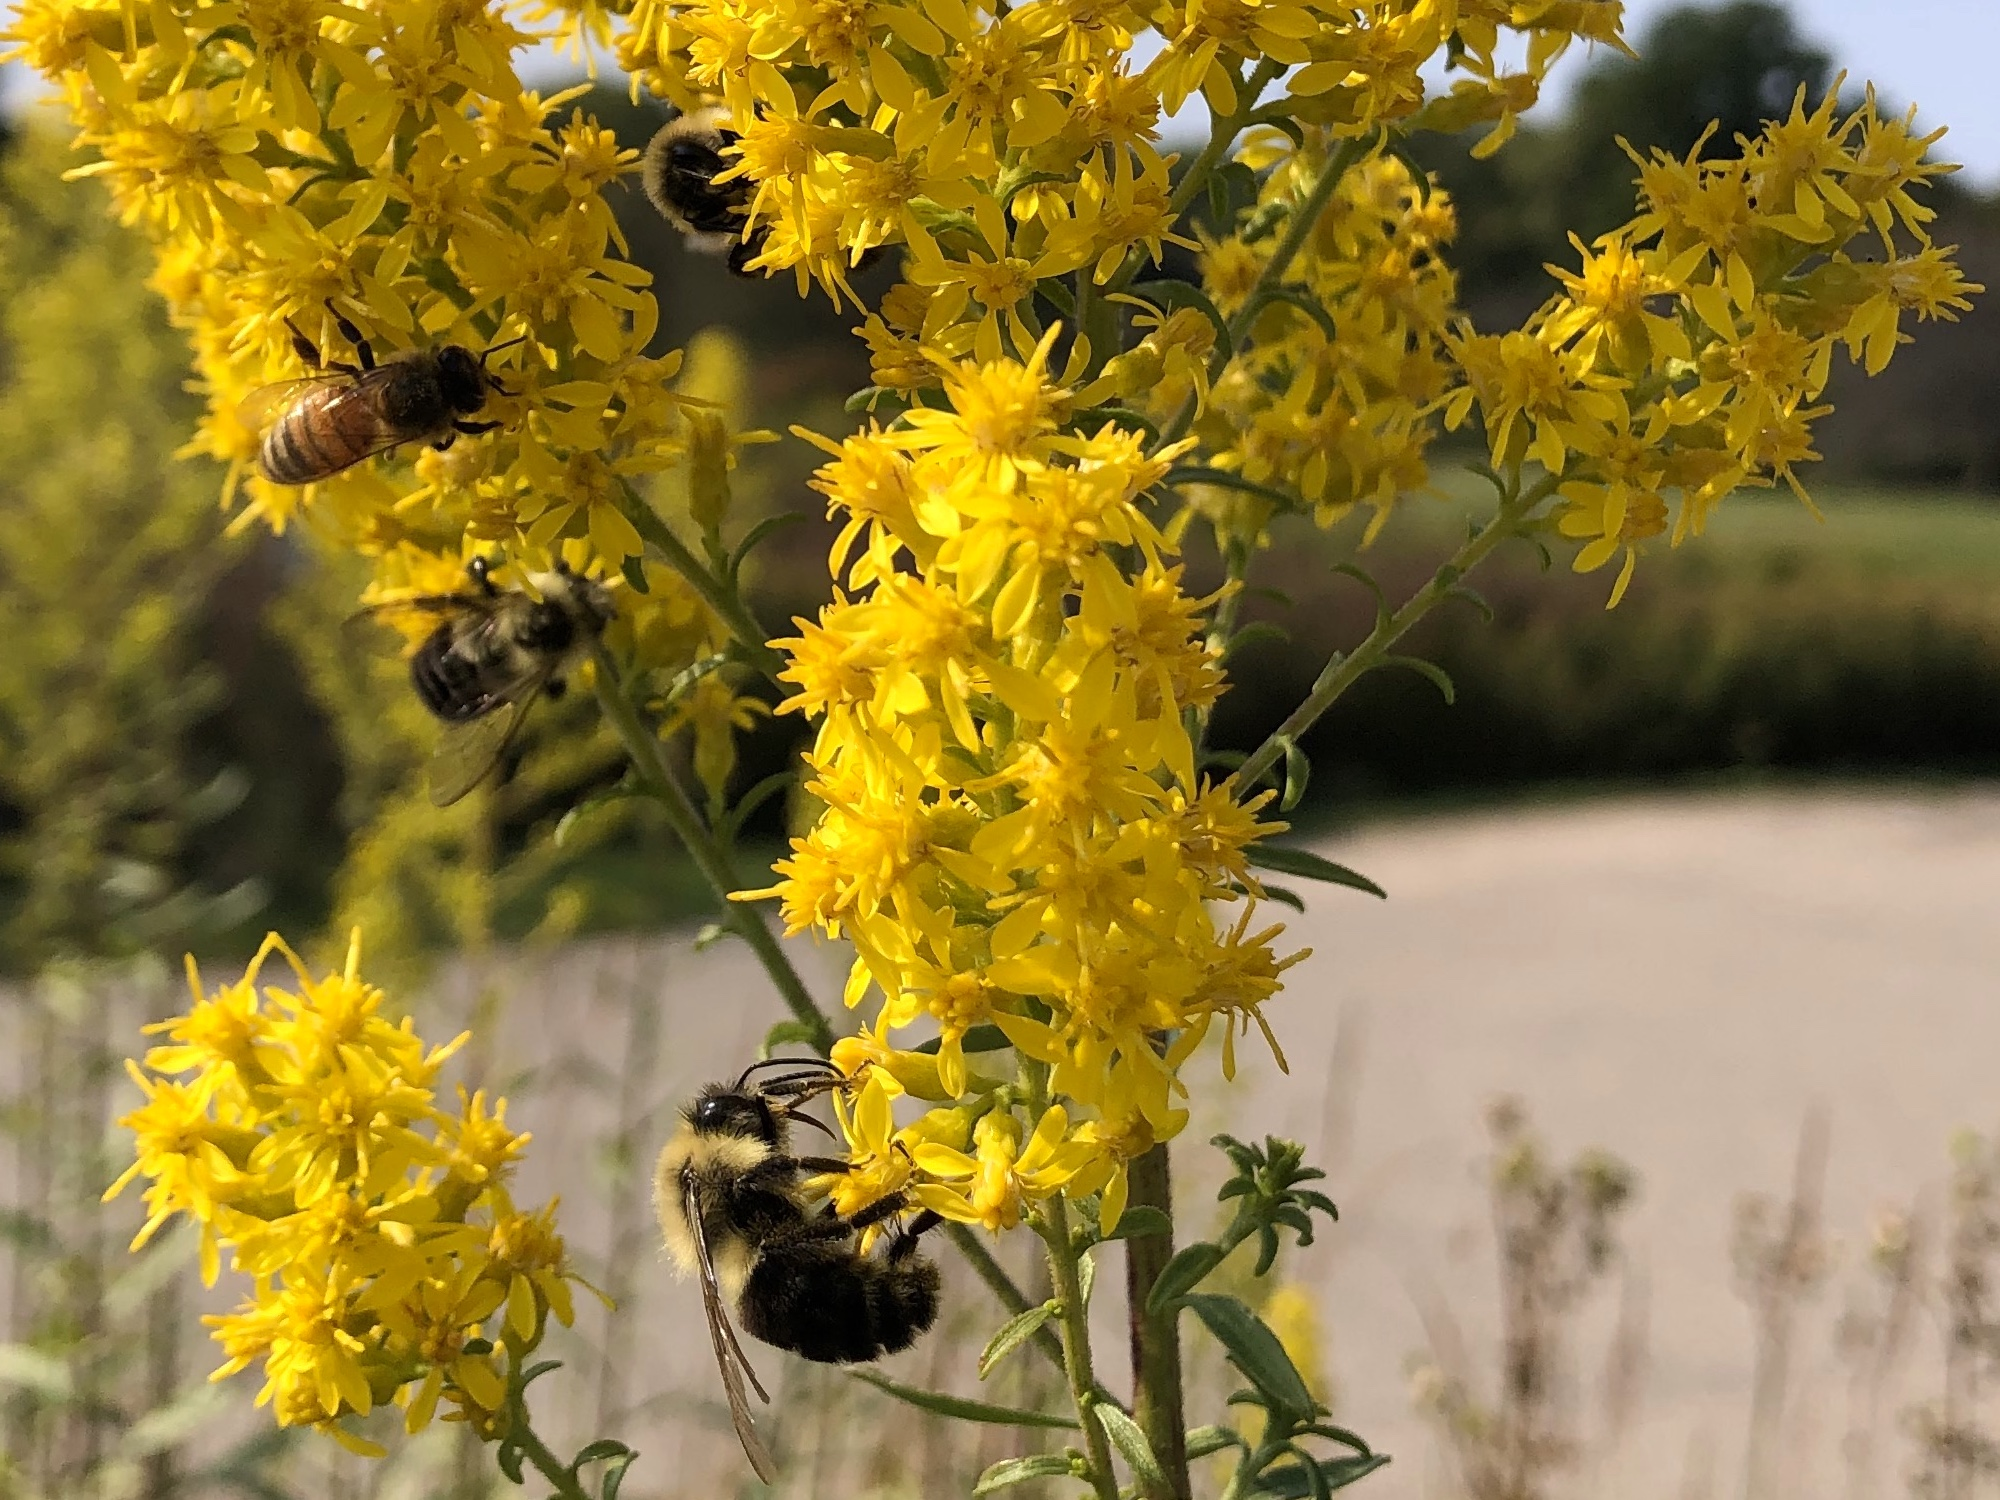 Bees on Showy Goldenrod on September 22, 2020.